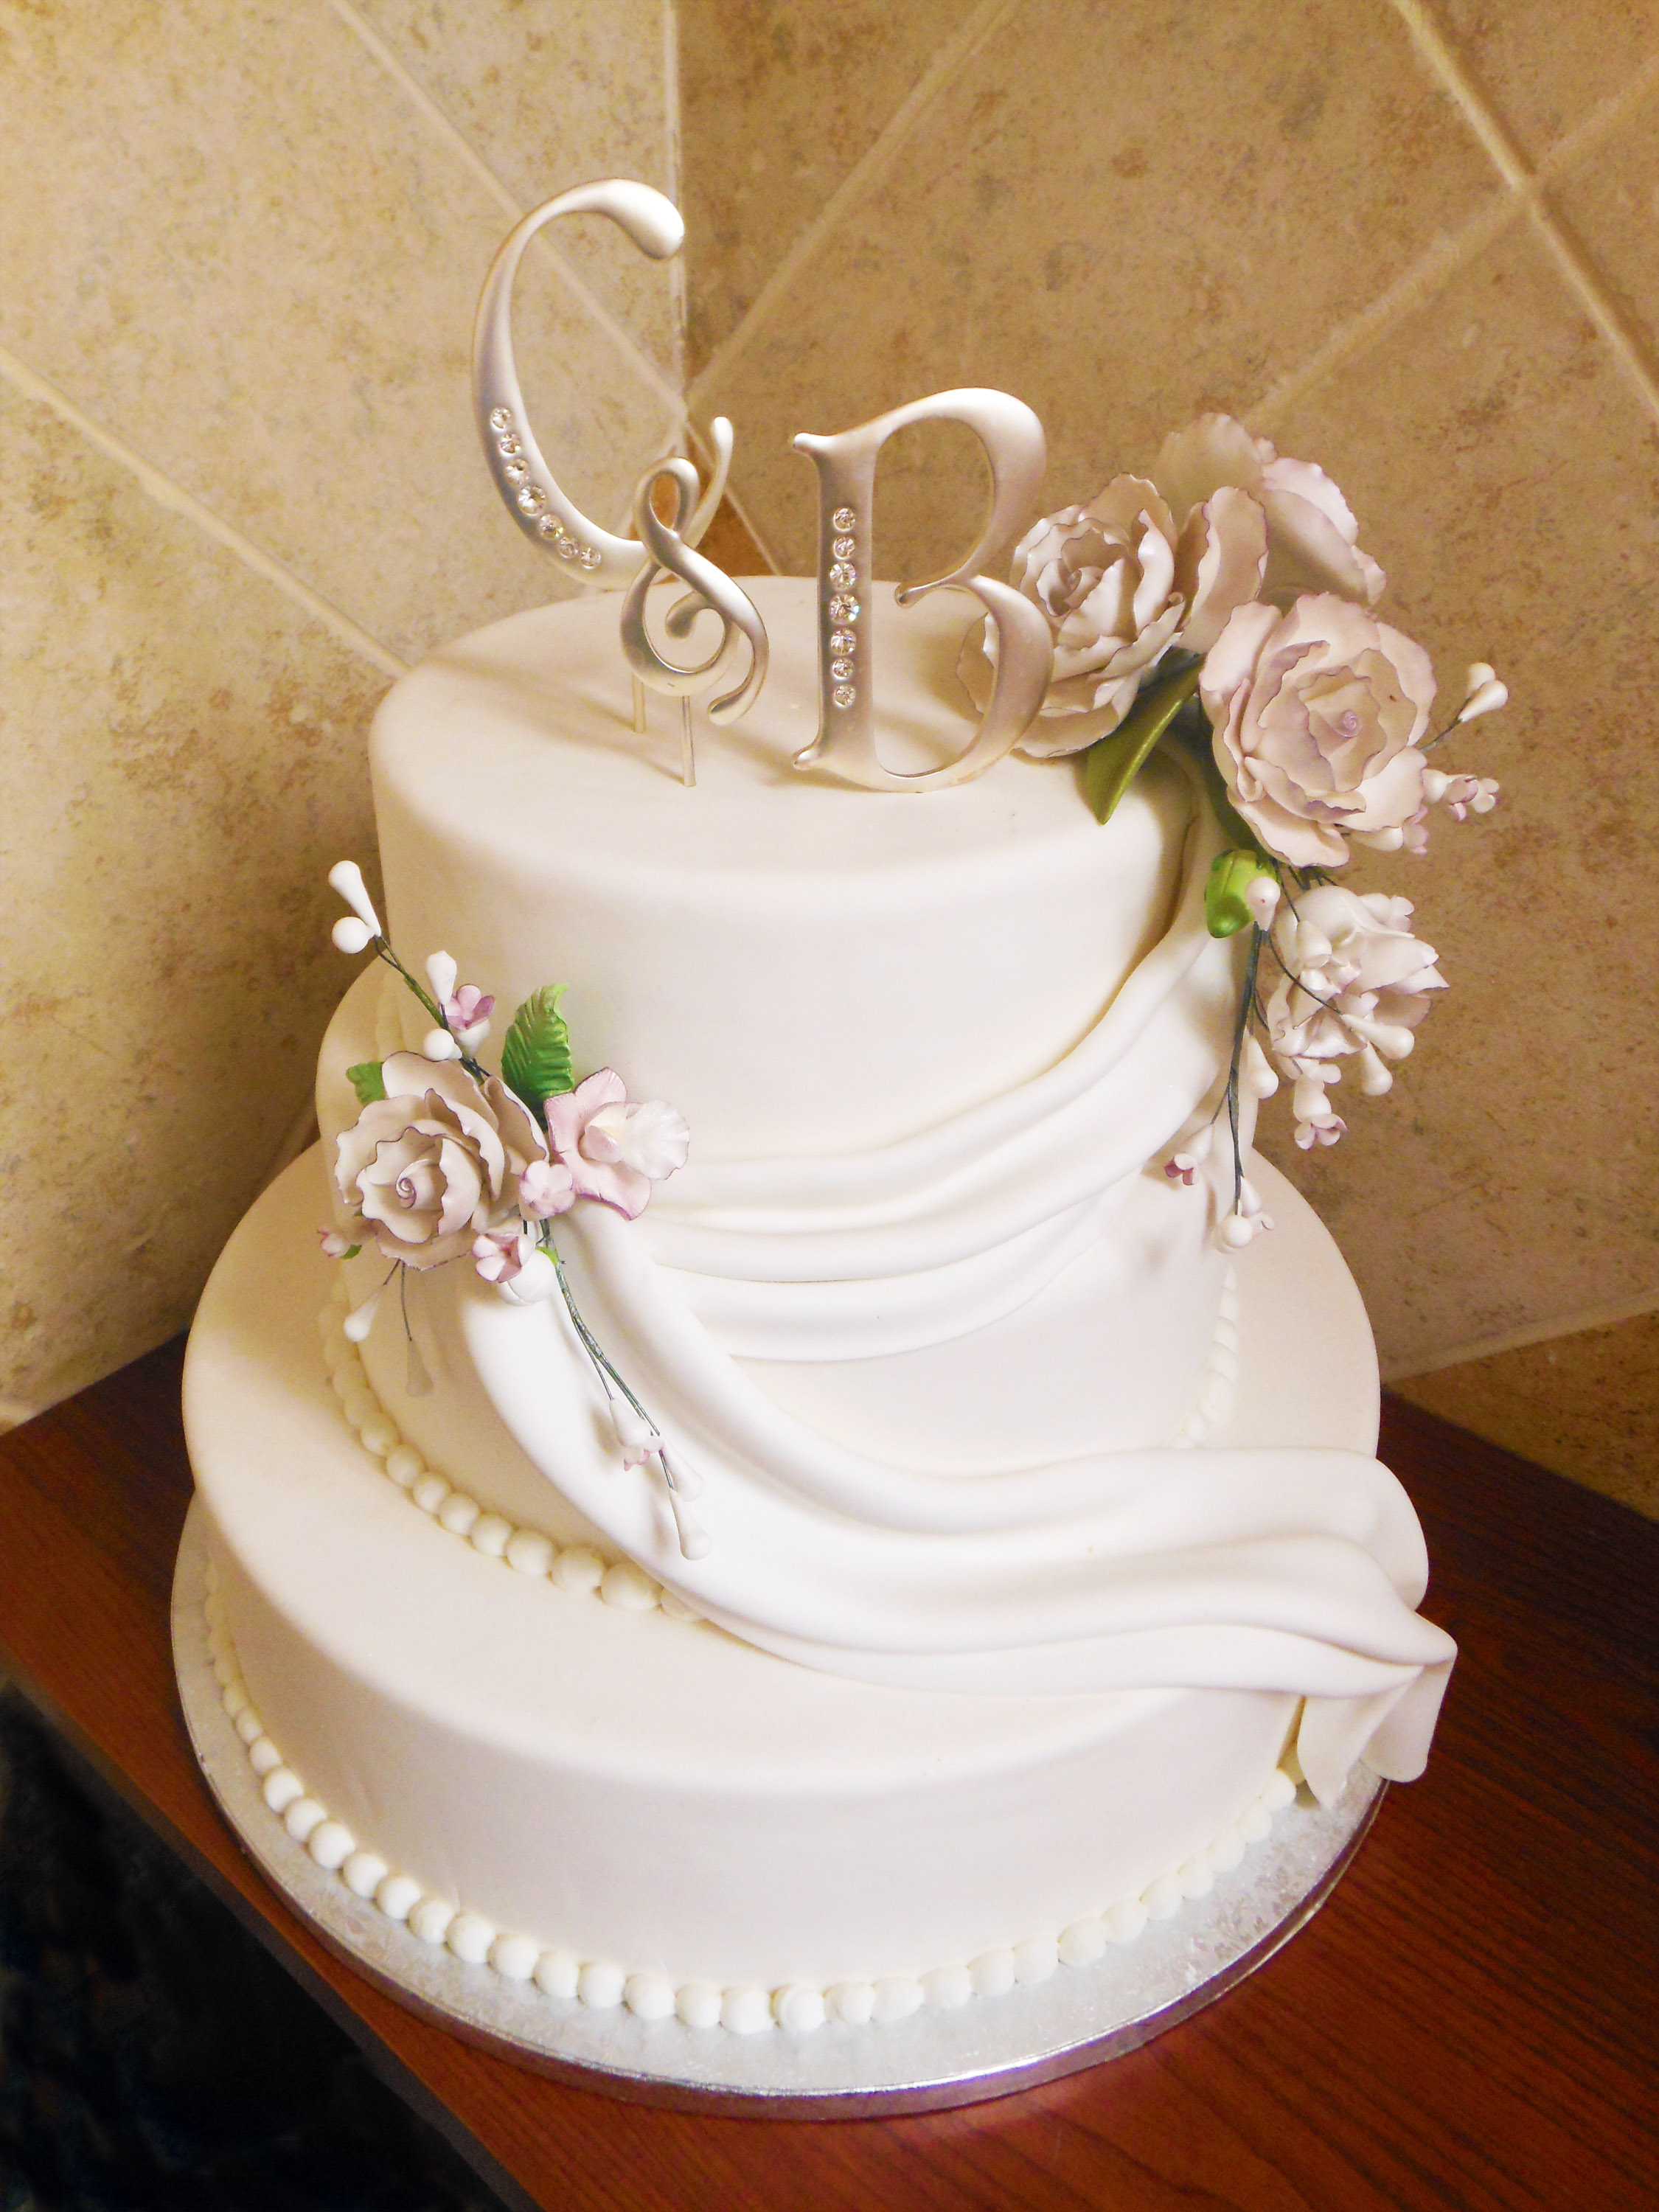 Wedding_cake_fondantdrape.jpg